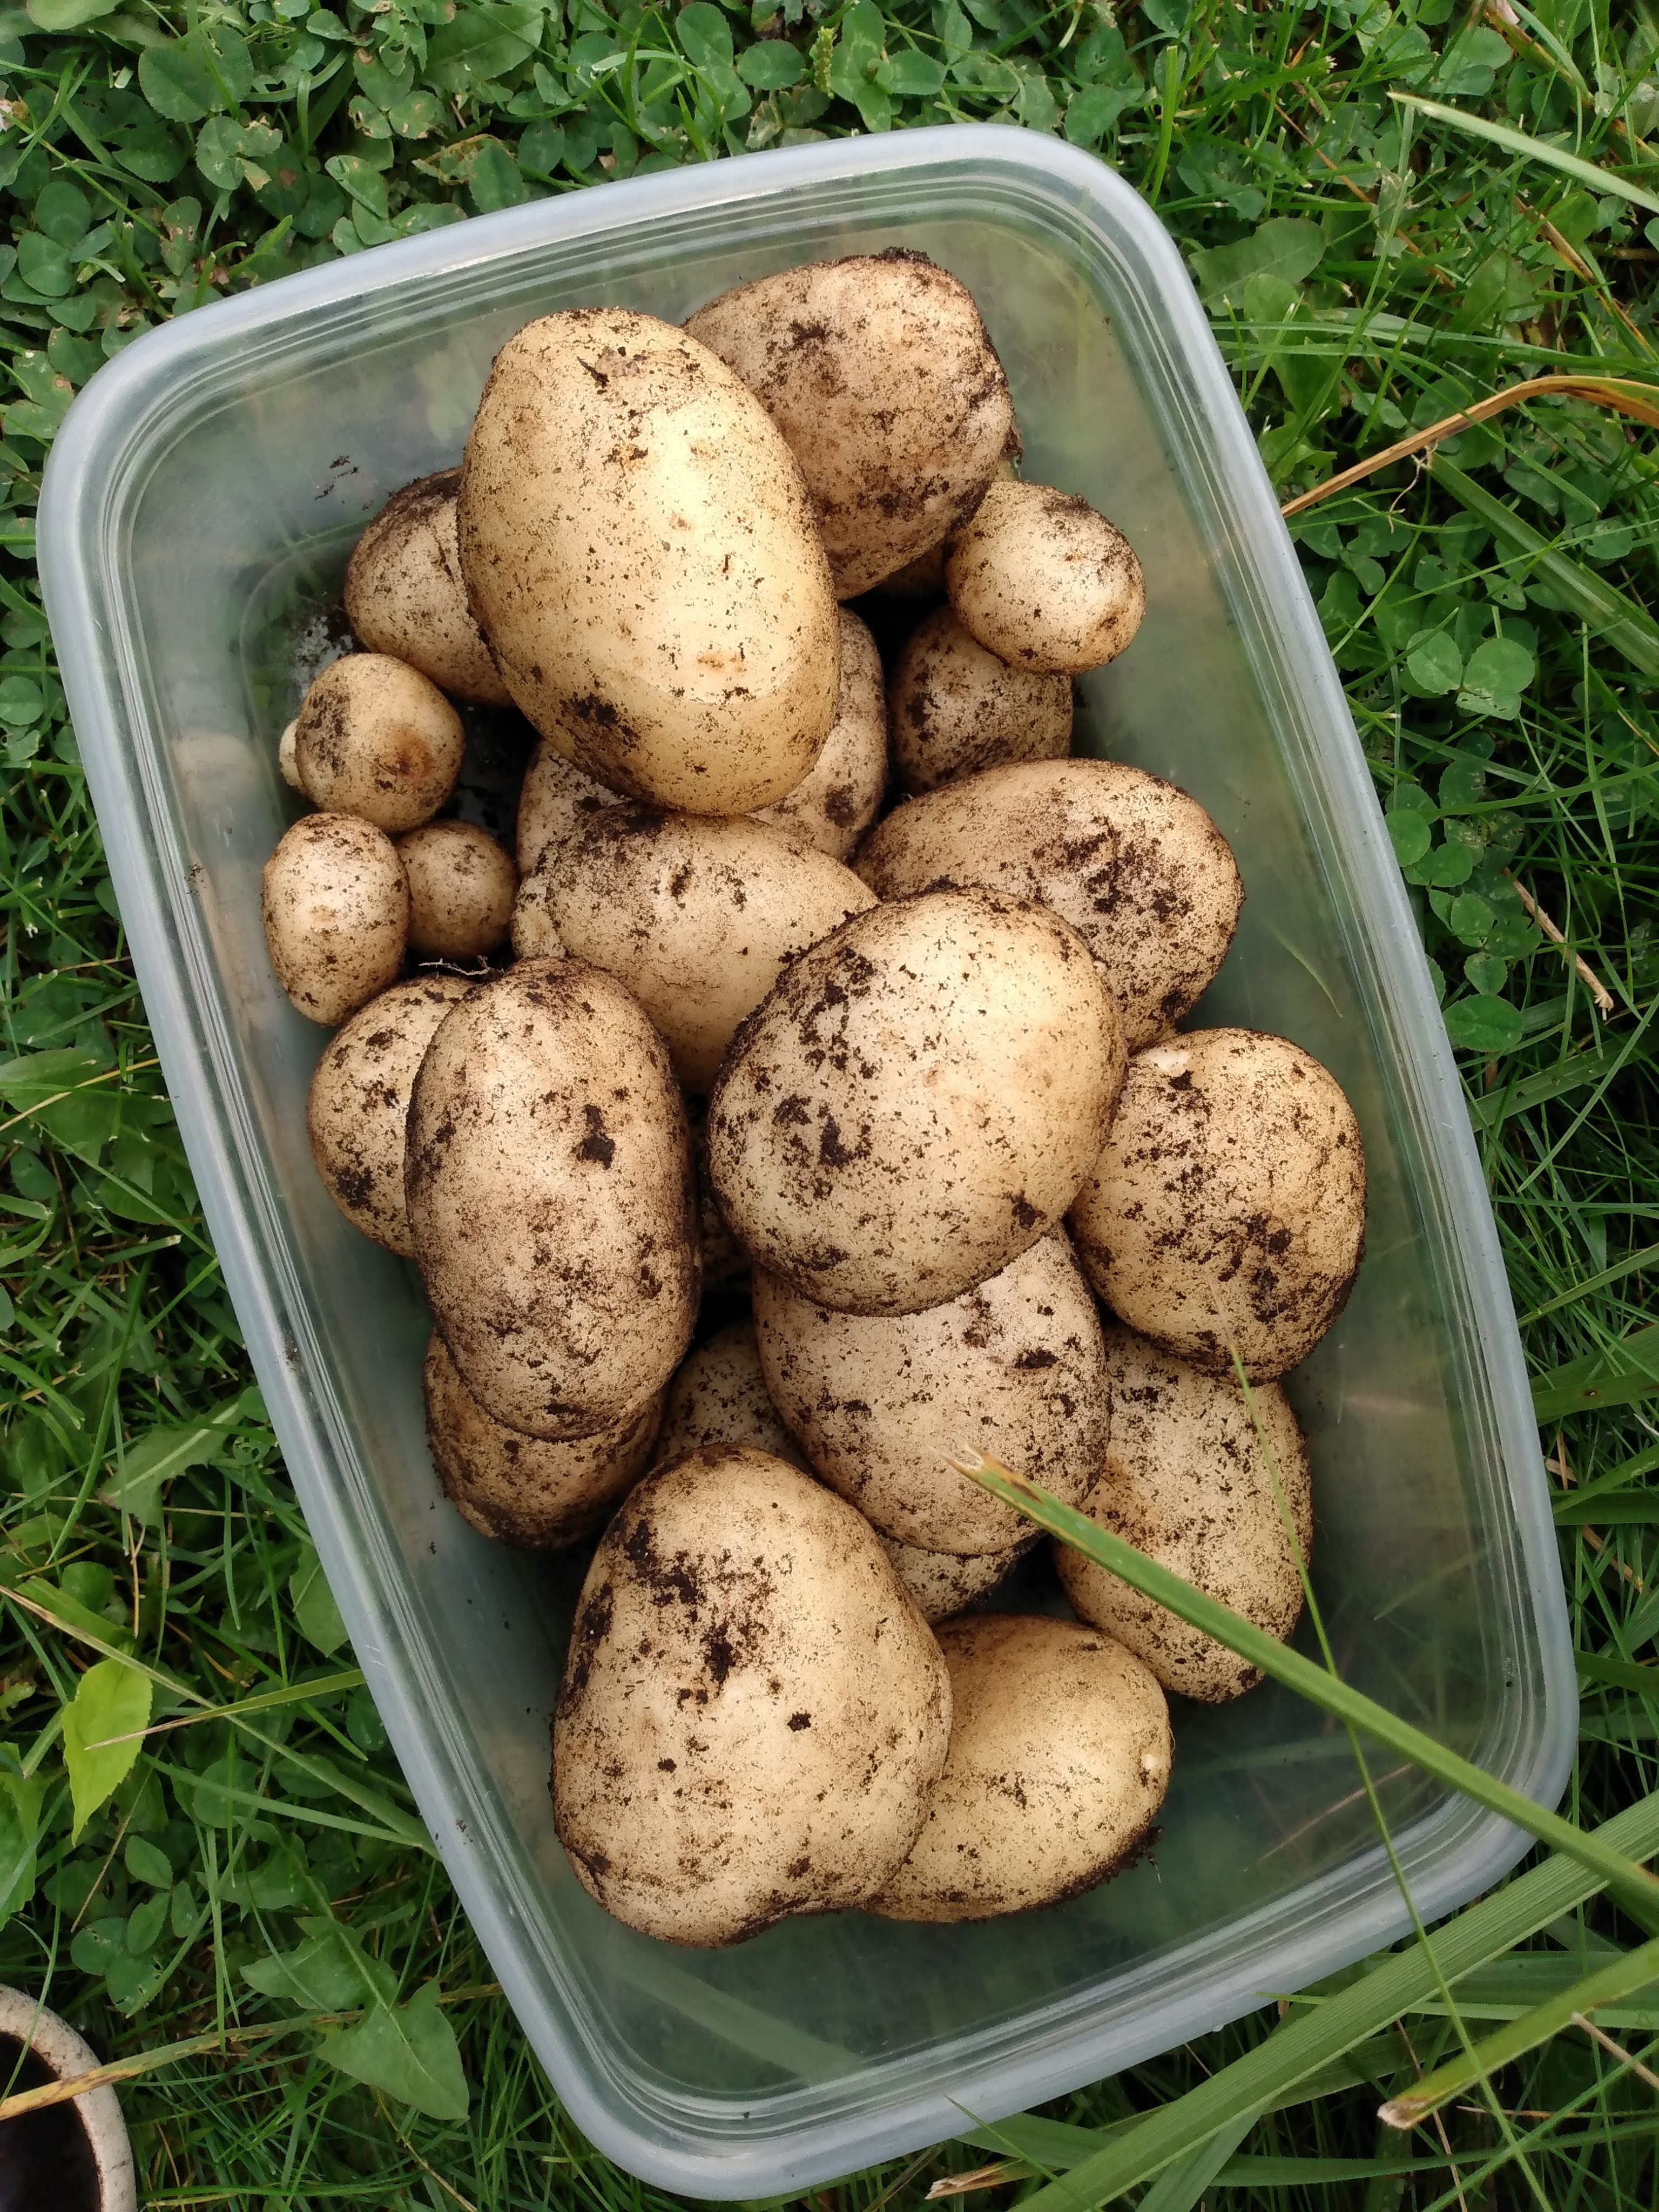 About 2 or 3 pounds of potatoes in a plastic bin.